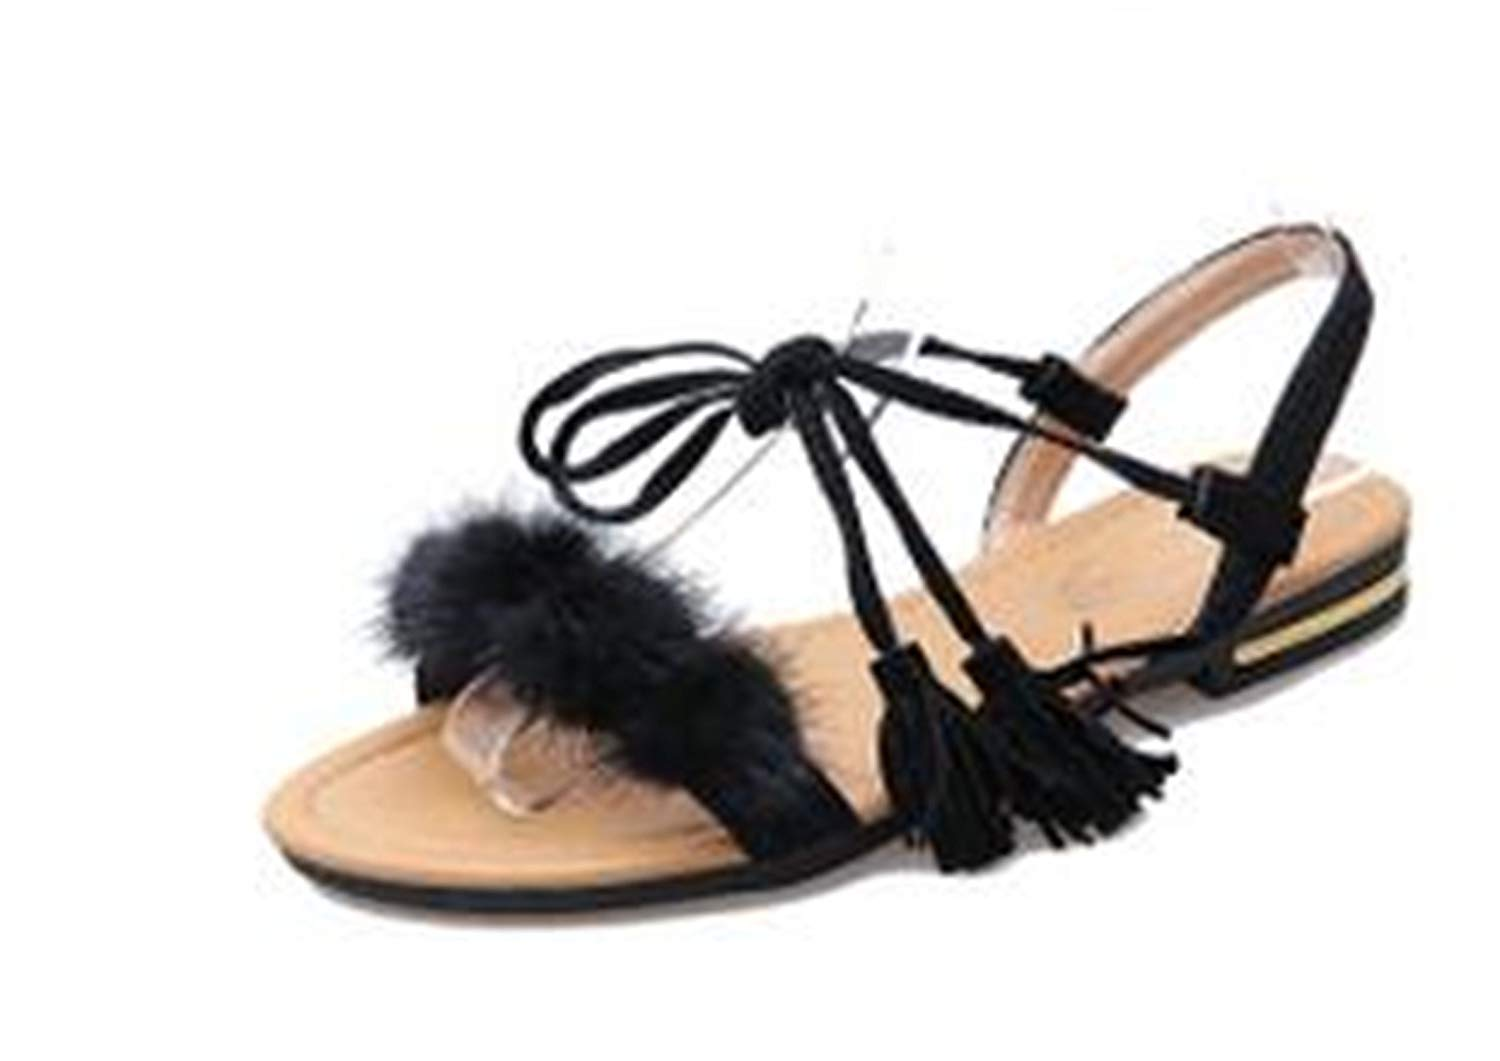 Beancan Real Fur Ankle Strap Gladiator Sandals Women Flats Tassel Shoes Ladies Wedding Beach Sandals